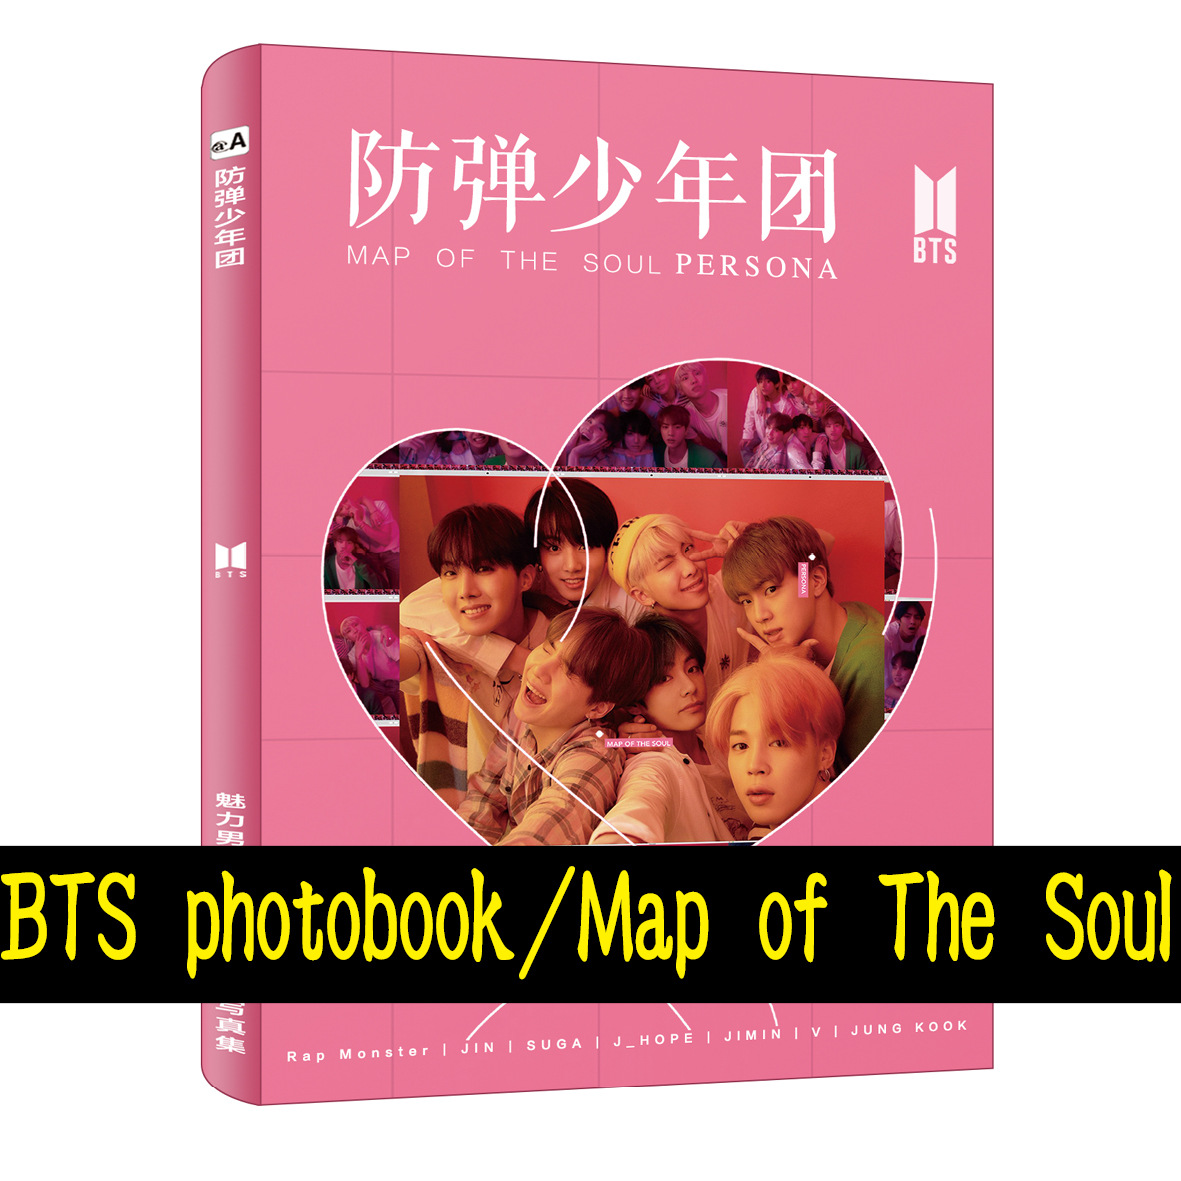 New Style BTS New Album Map Of The Soul Photo Album BTS Bulletproof Boys Related Products Photo